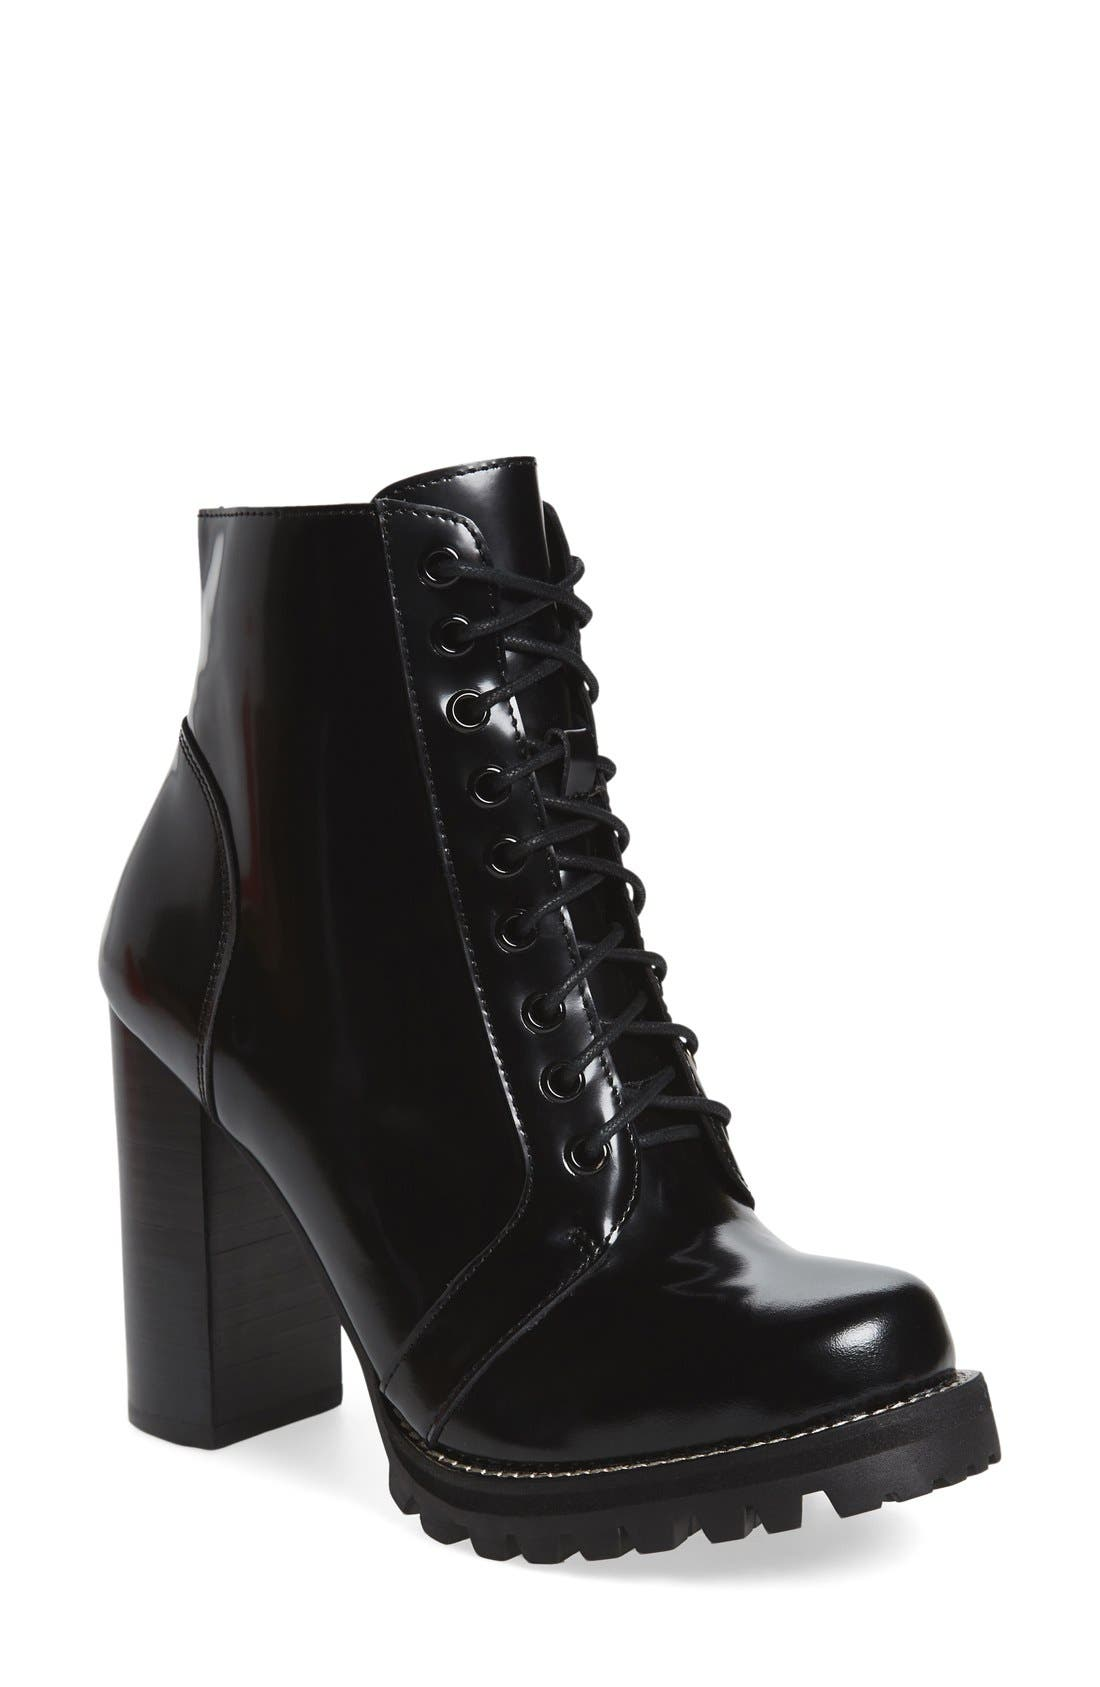 'Legion' High Heel Boot,                             Main thumbnail 1, color,                             BLACK BOX LEATHER